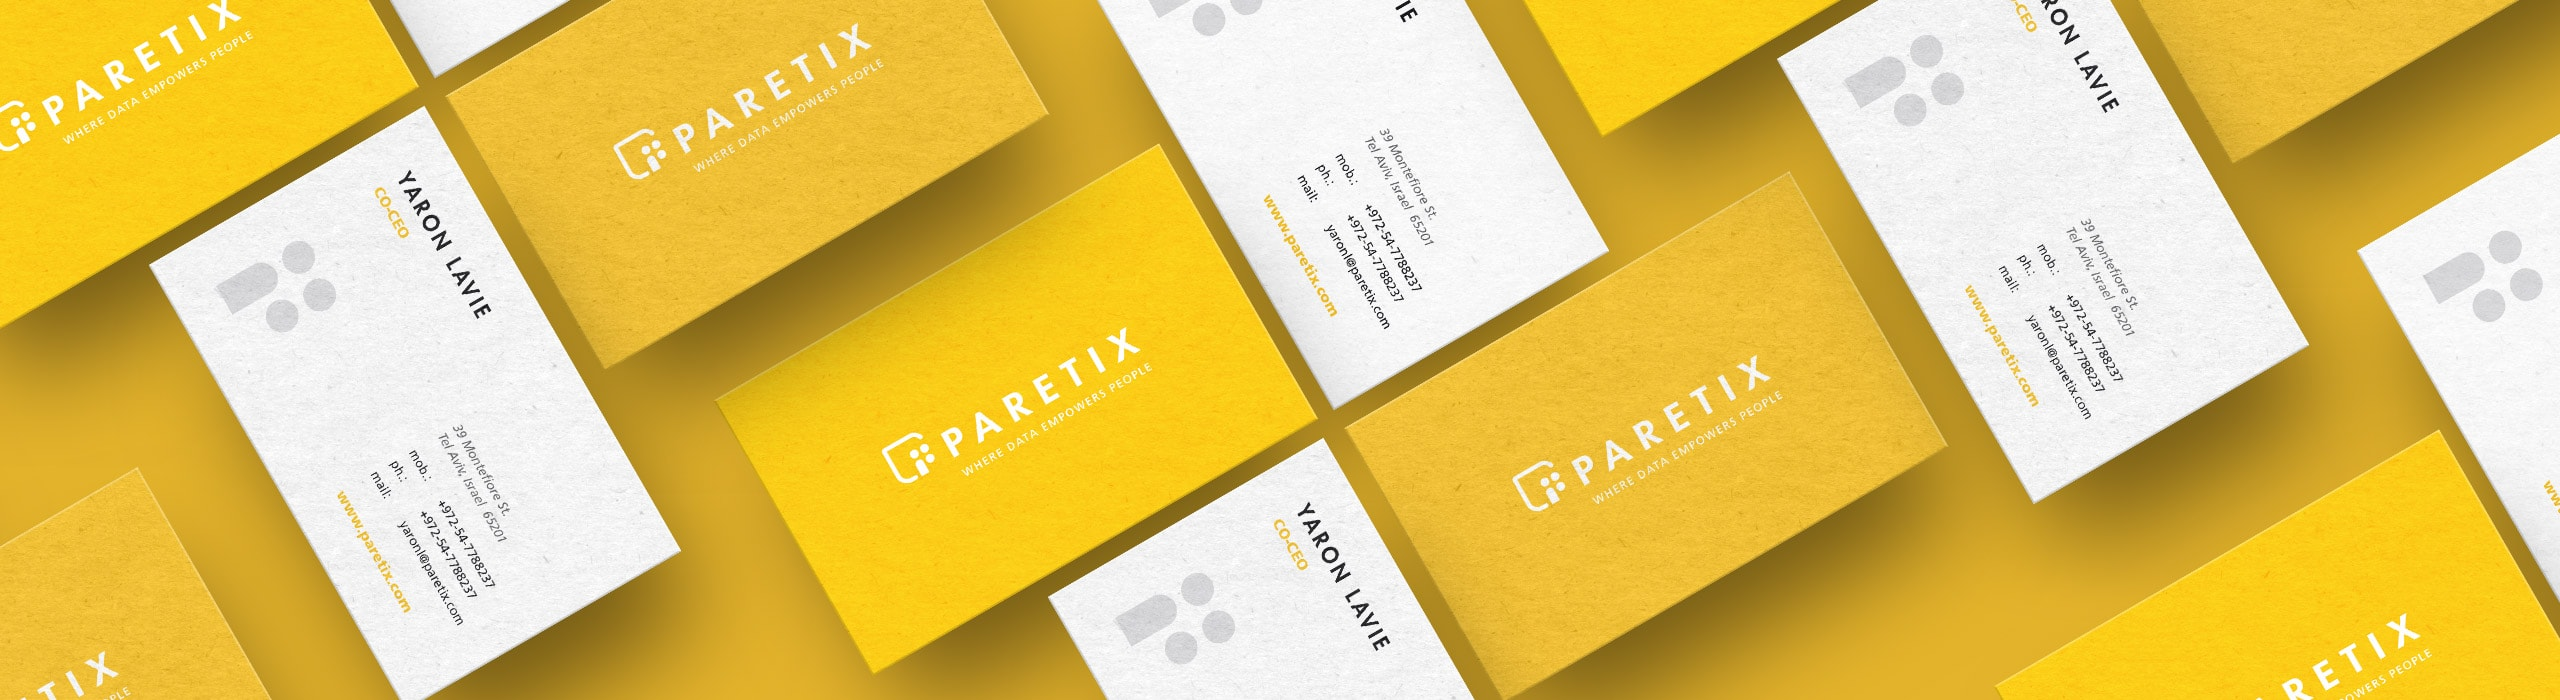 Paretix - natie-paretix-business-cards - Natie Branding Agency